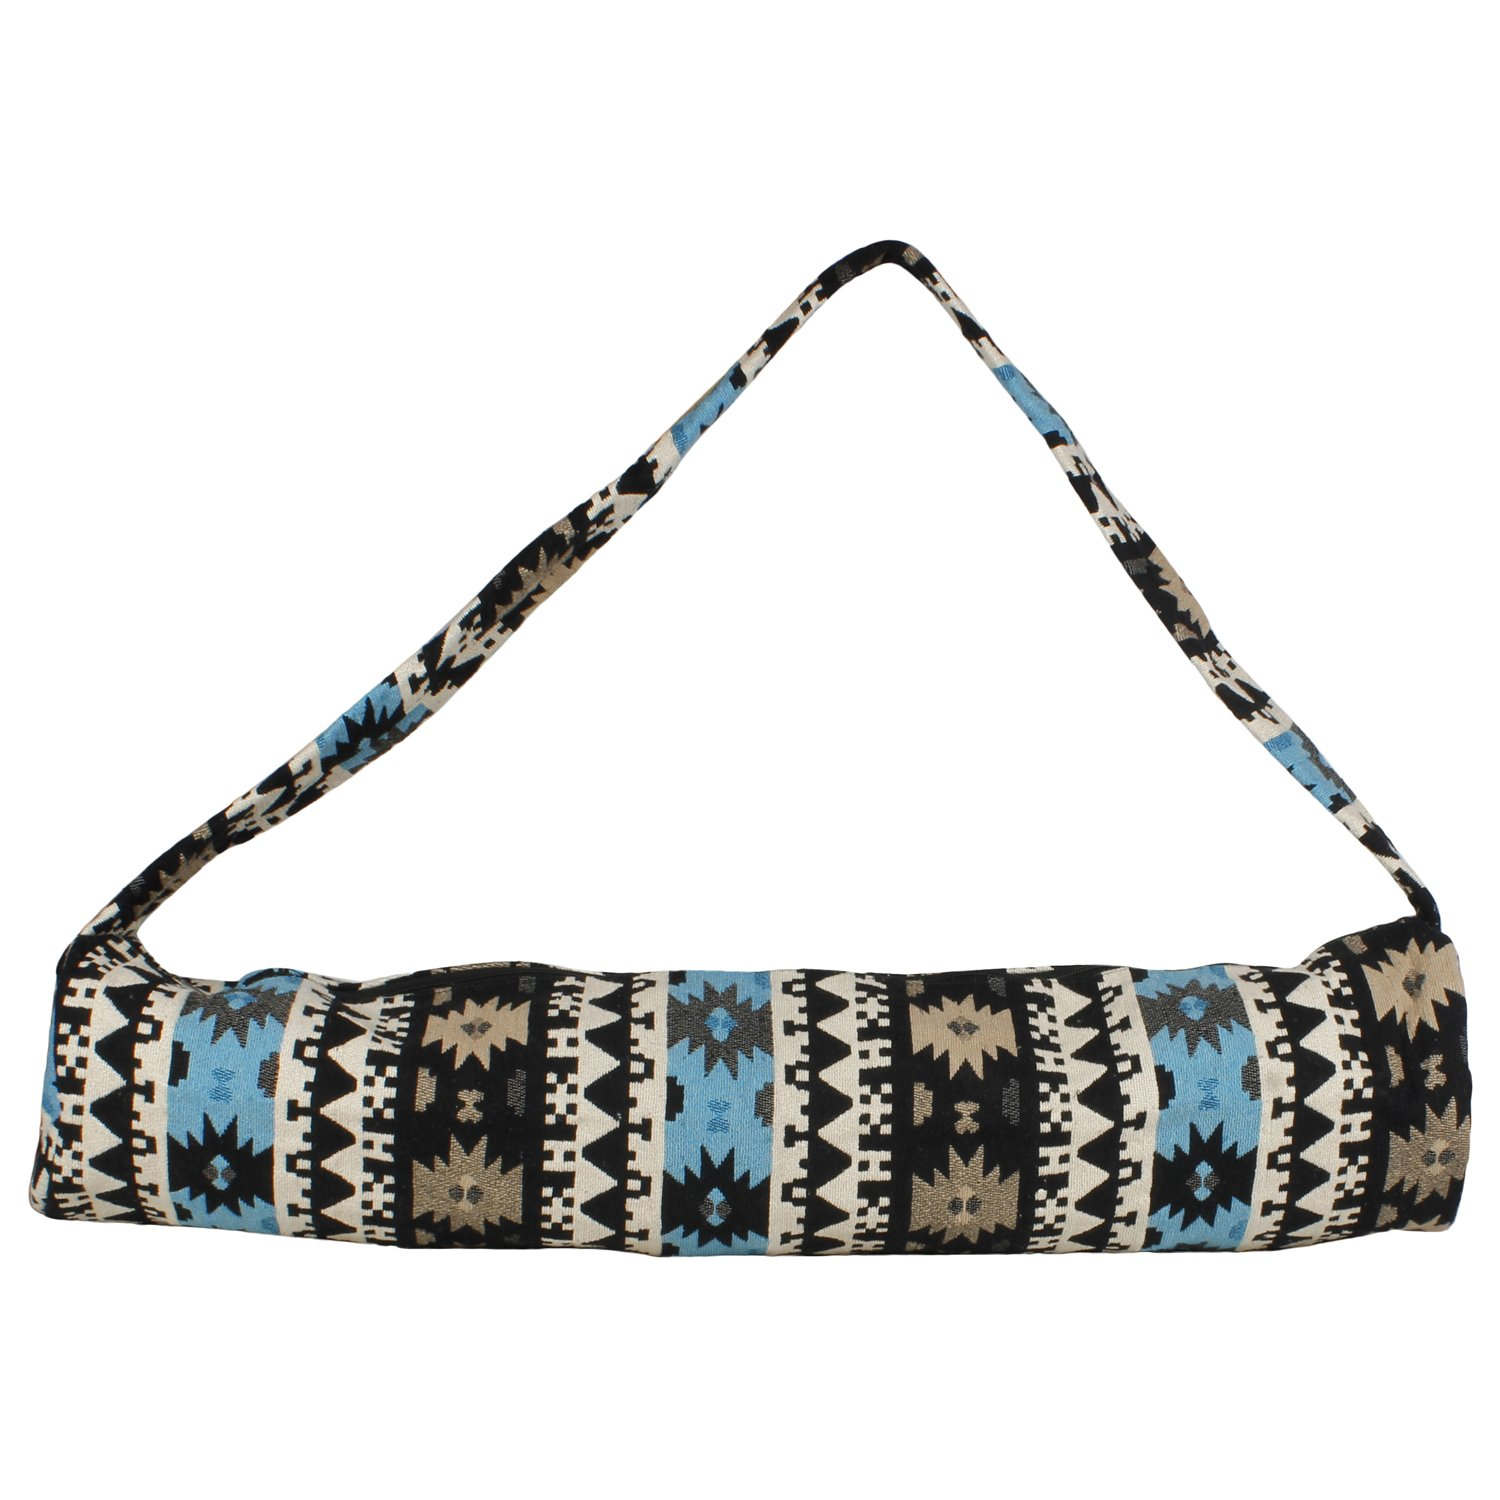 Indian Stylish Yoga Mat Cotton Bag,Light Weight Exercise Mat Cover,size 27